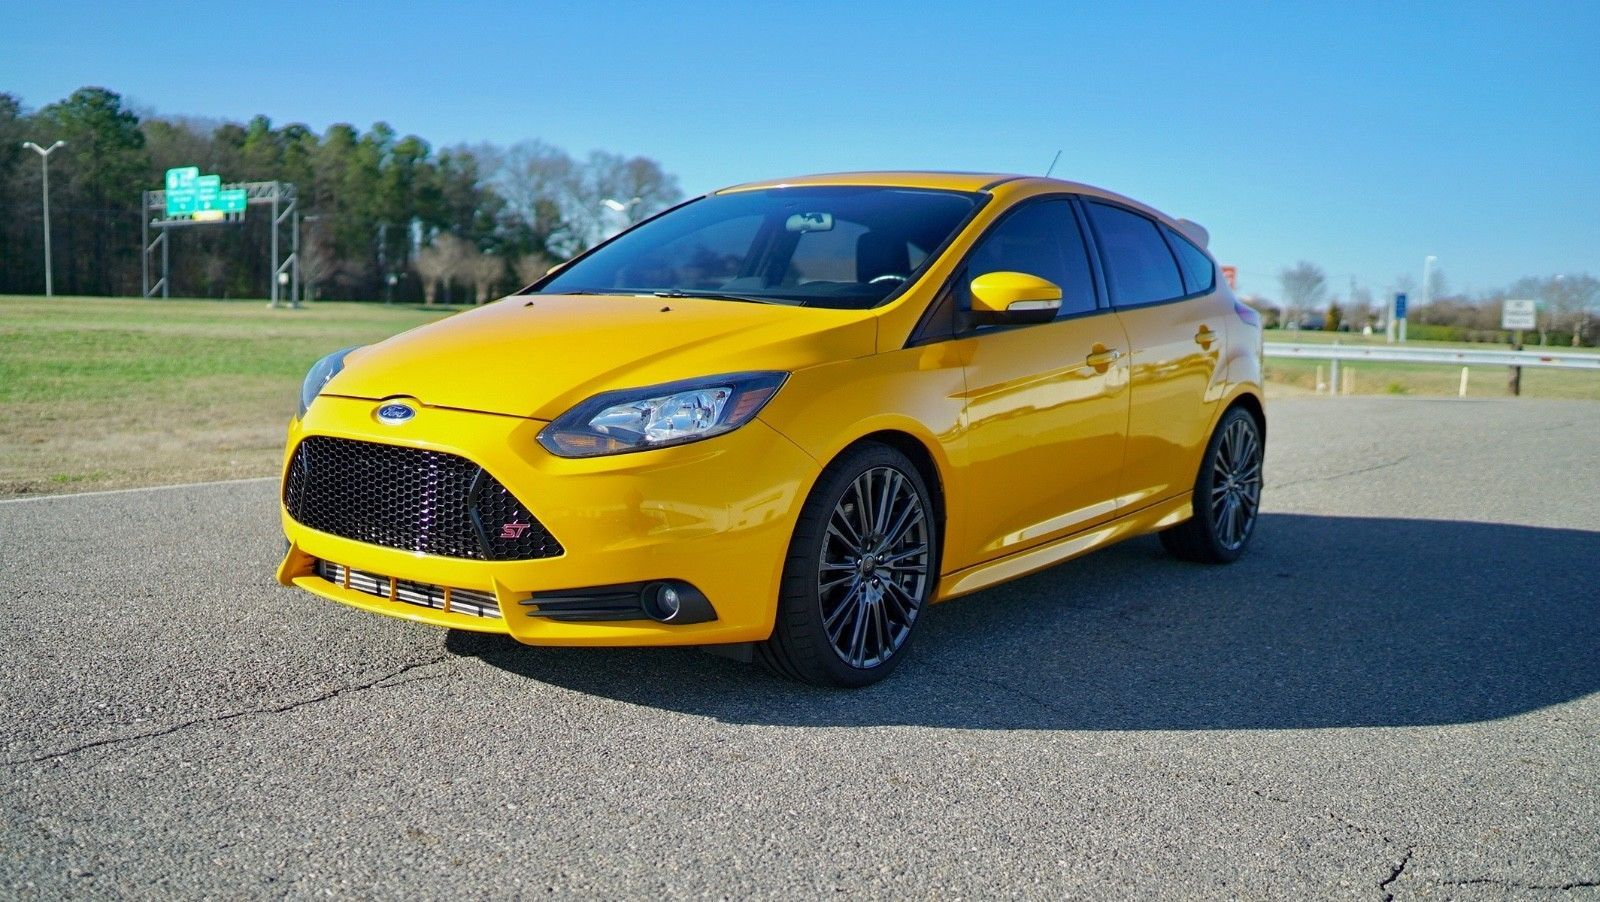 2013 Ford Focus Lots Of Upgrades Focus St Upgrades Turbo Rs